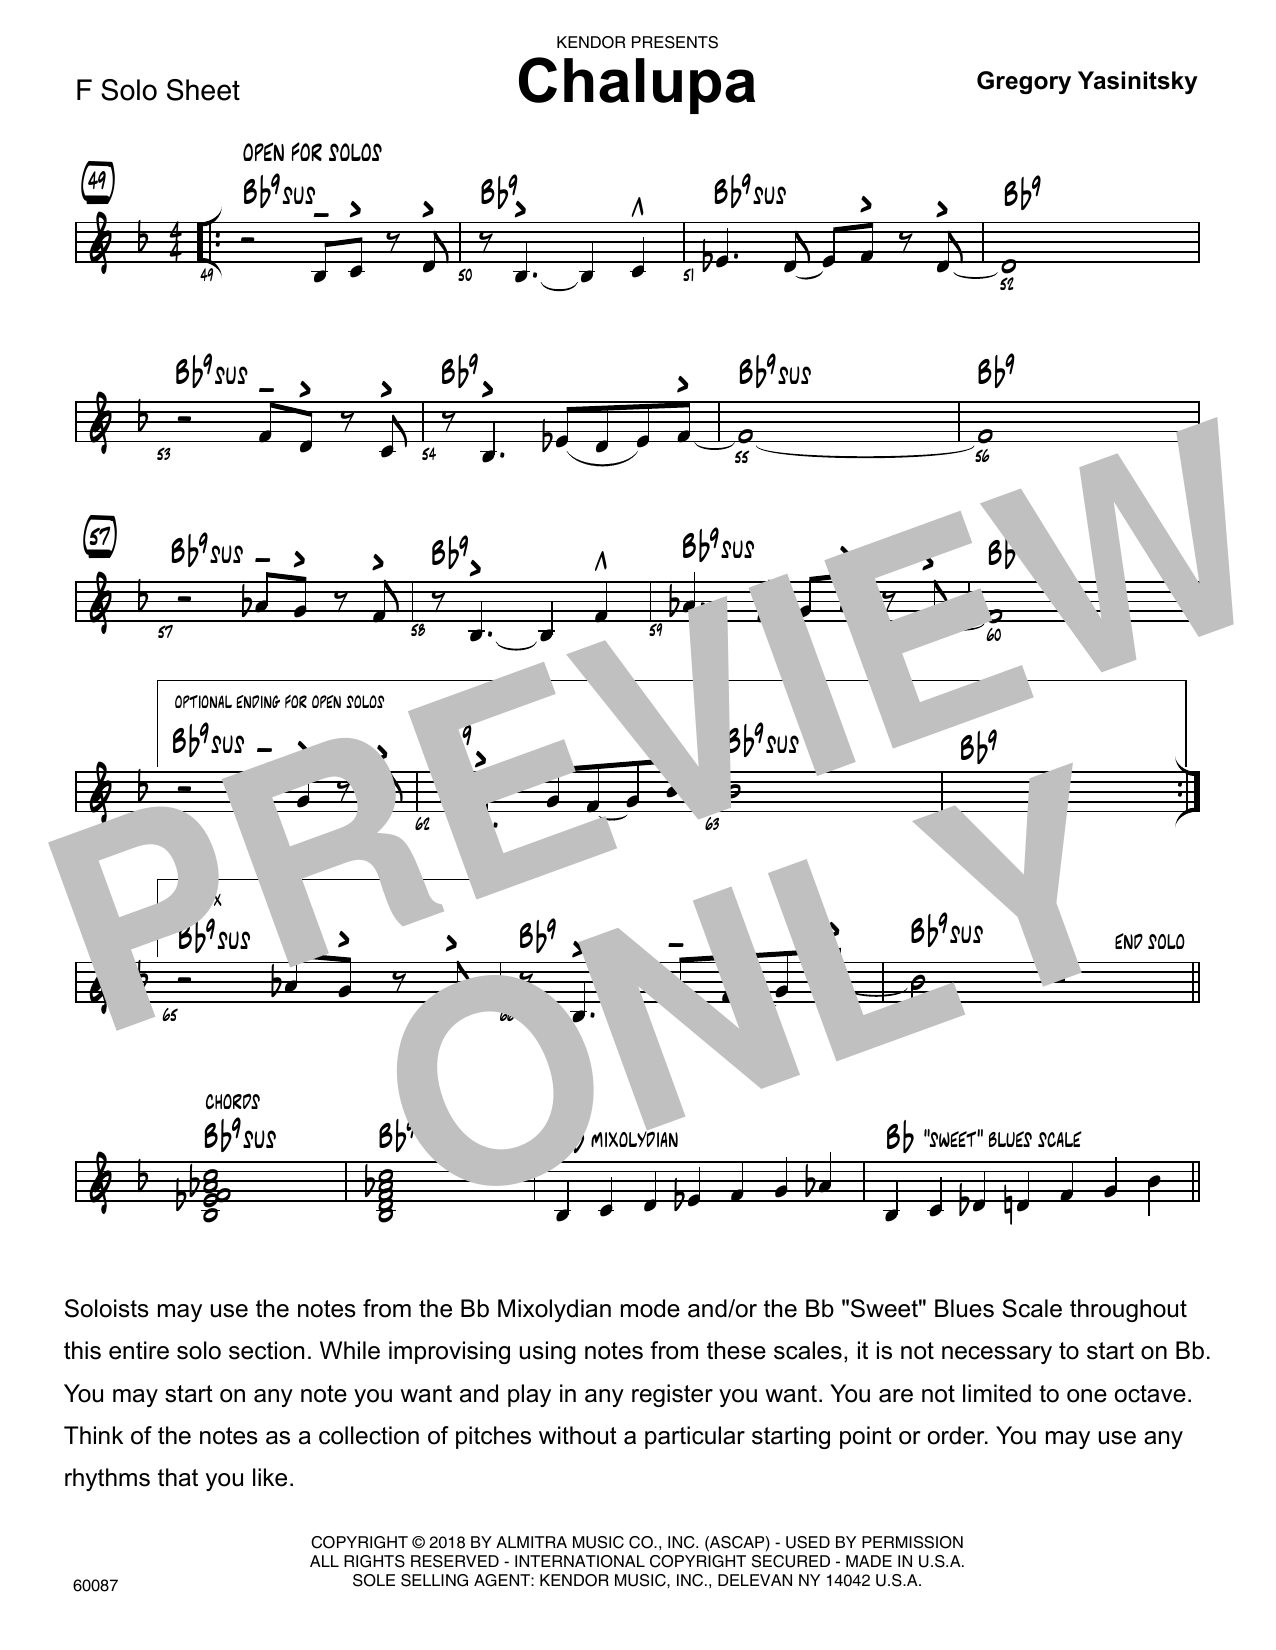 Gregory Yasinitsky Chalupa - Solo Sheet for F Instruments sheet music preview music notes and score for Jazz Ensemble including 1 page(s)